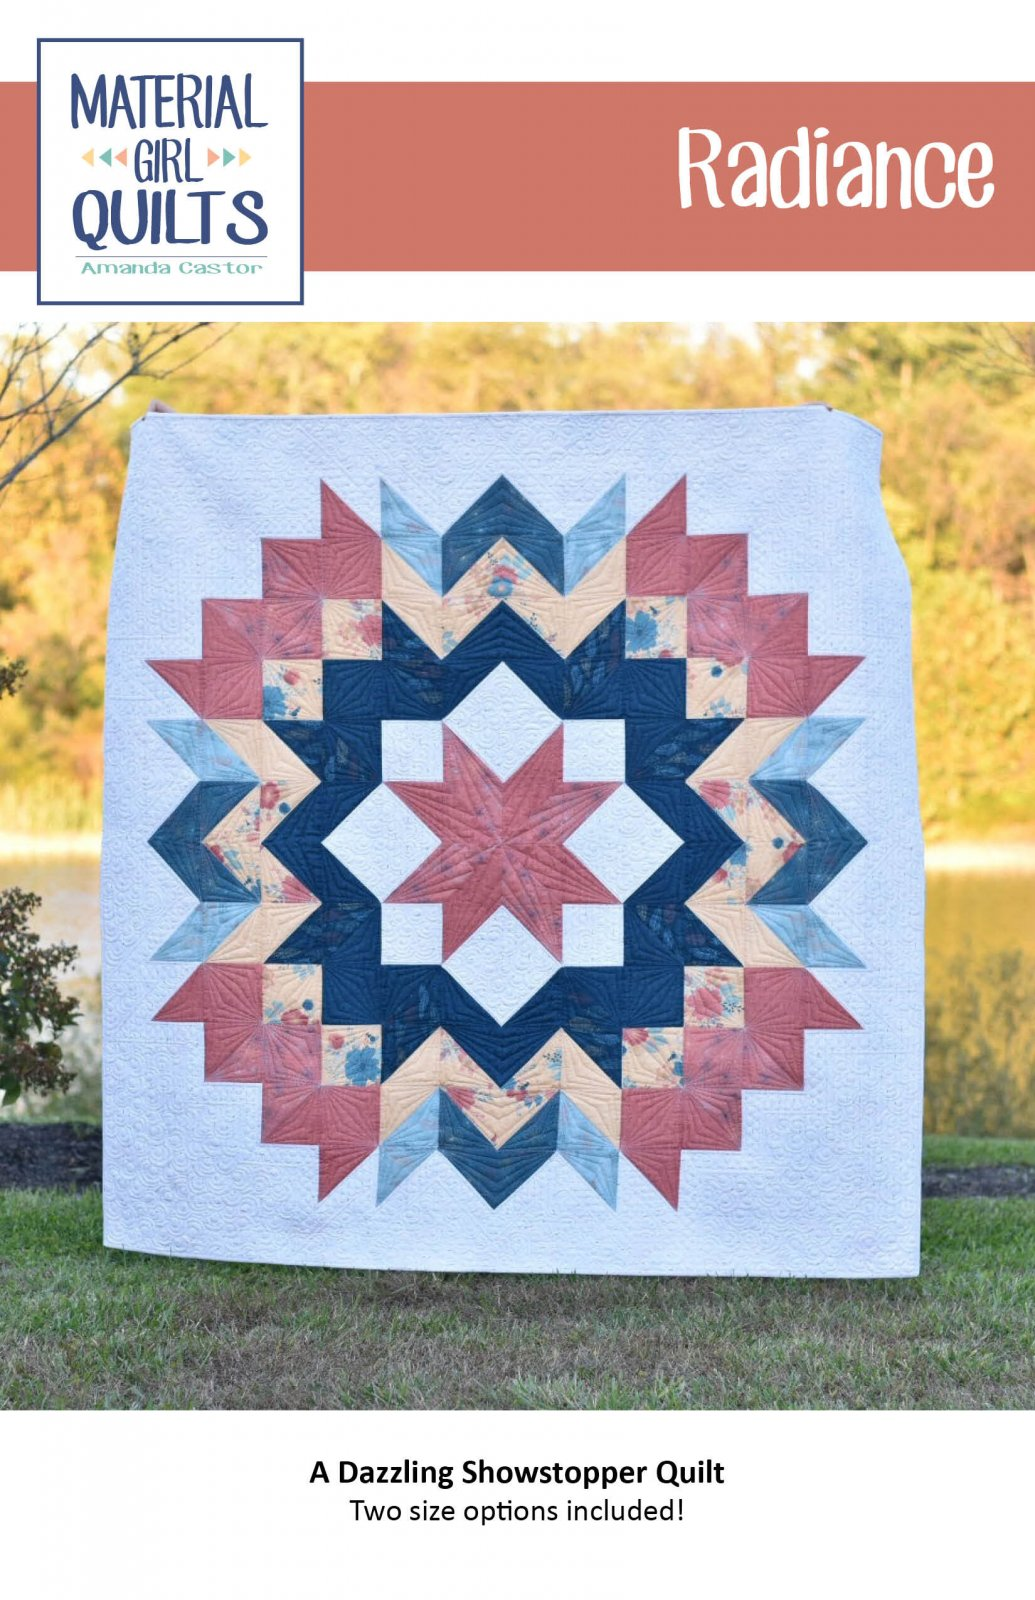 Radiance Pattern by Material Girl Quilts